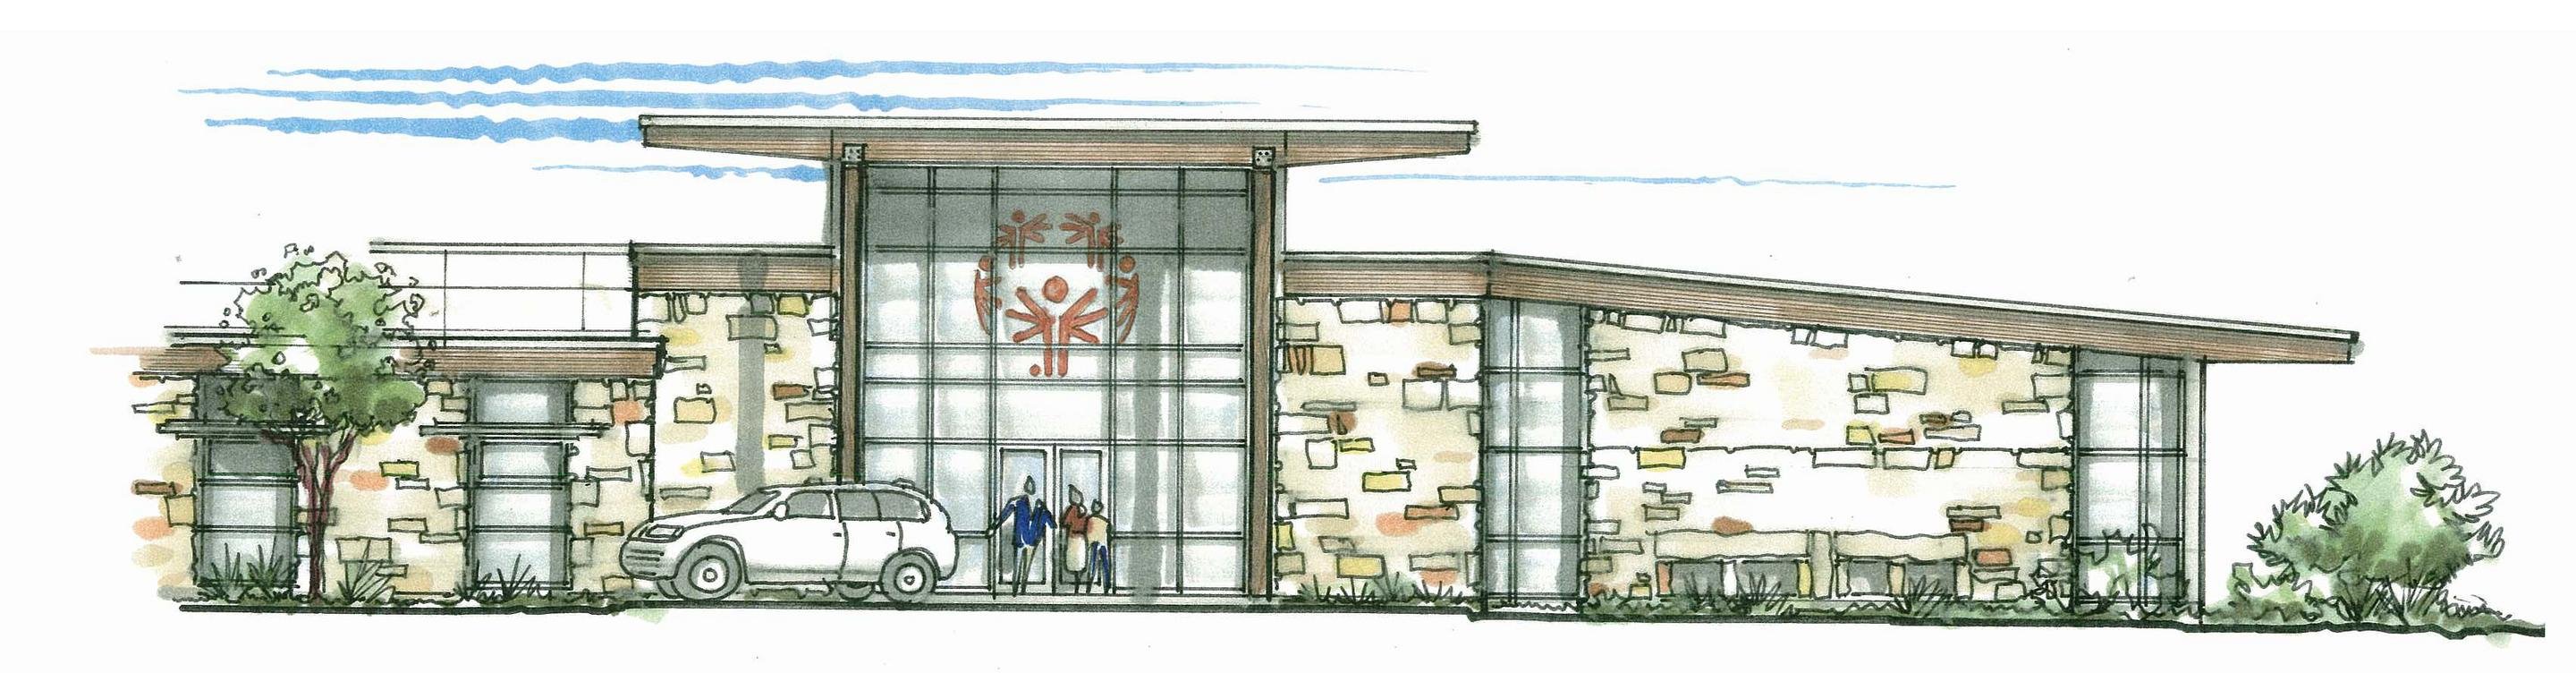 Special Olympics Texas breaks ground on Austin headquarters - Austin Business Journal